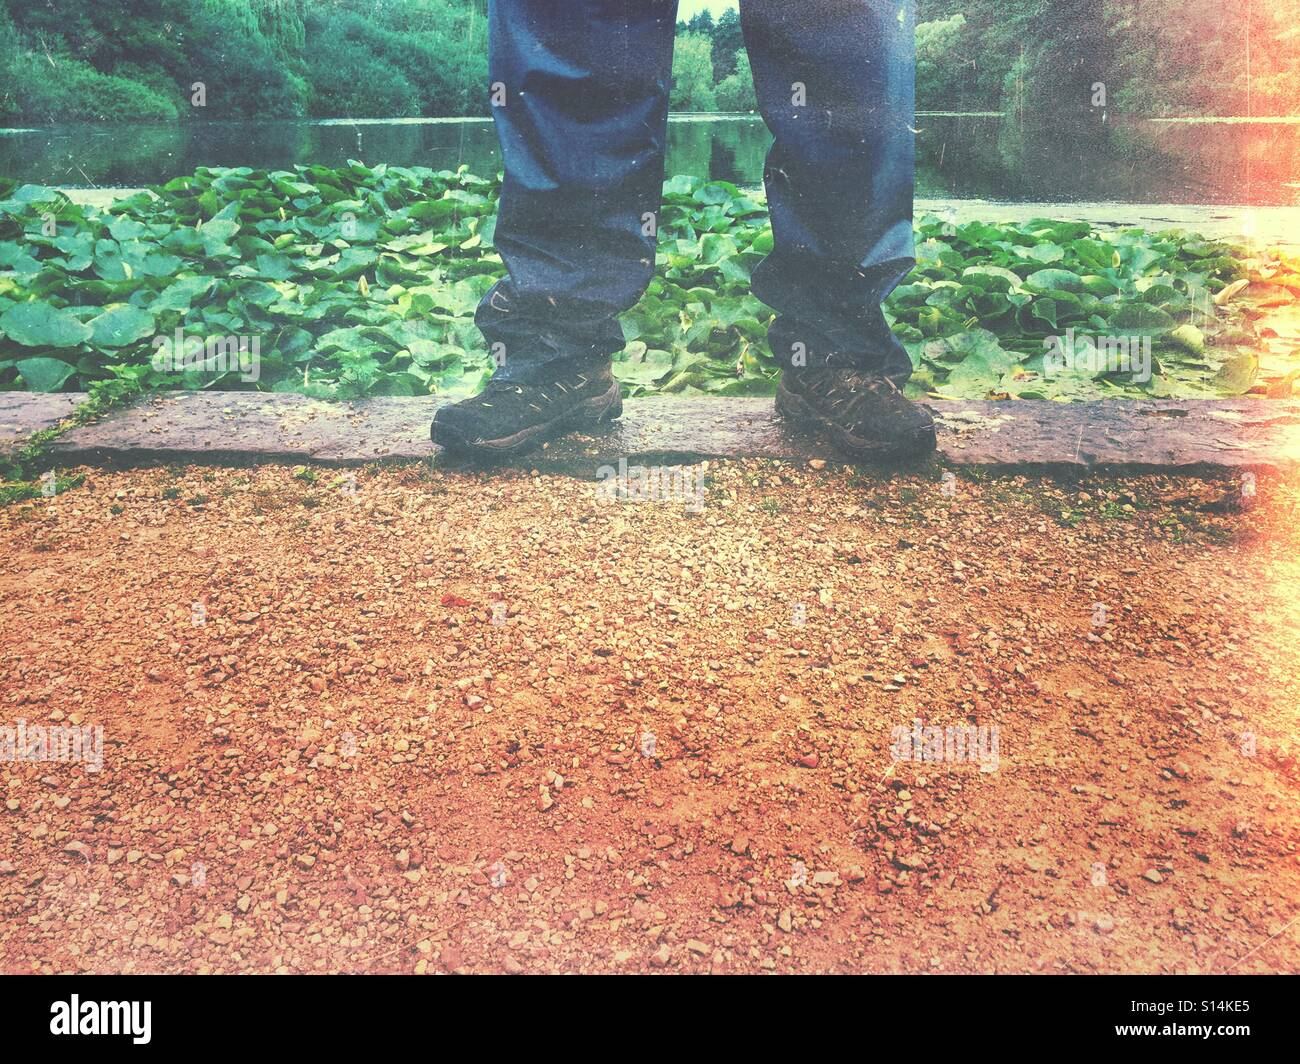 Mans legs wearing waterproof trousers and walking boots - Stock Image